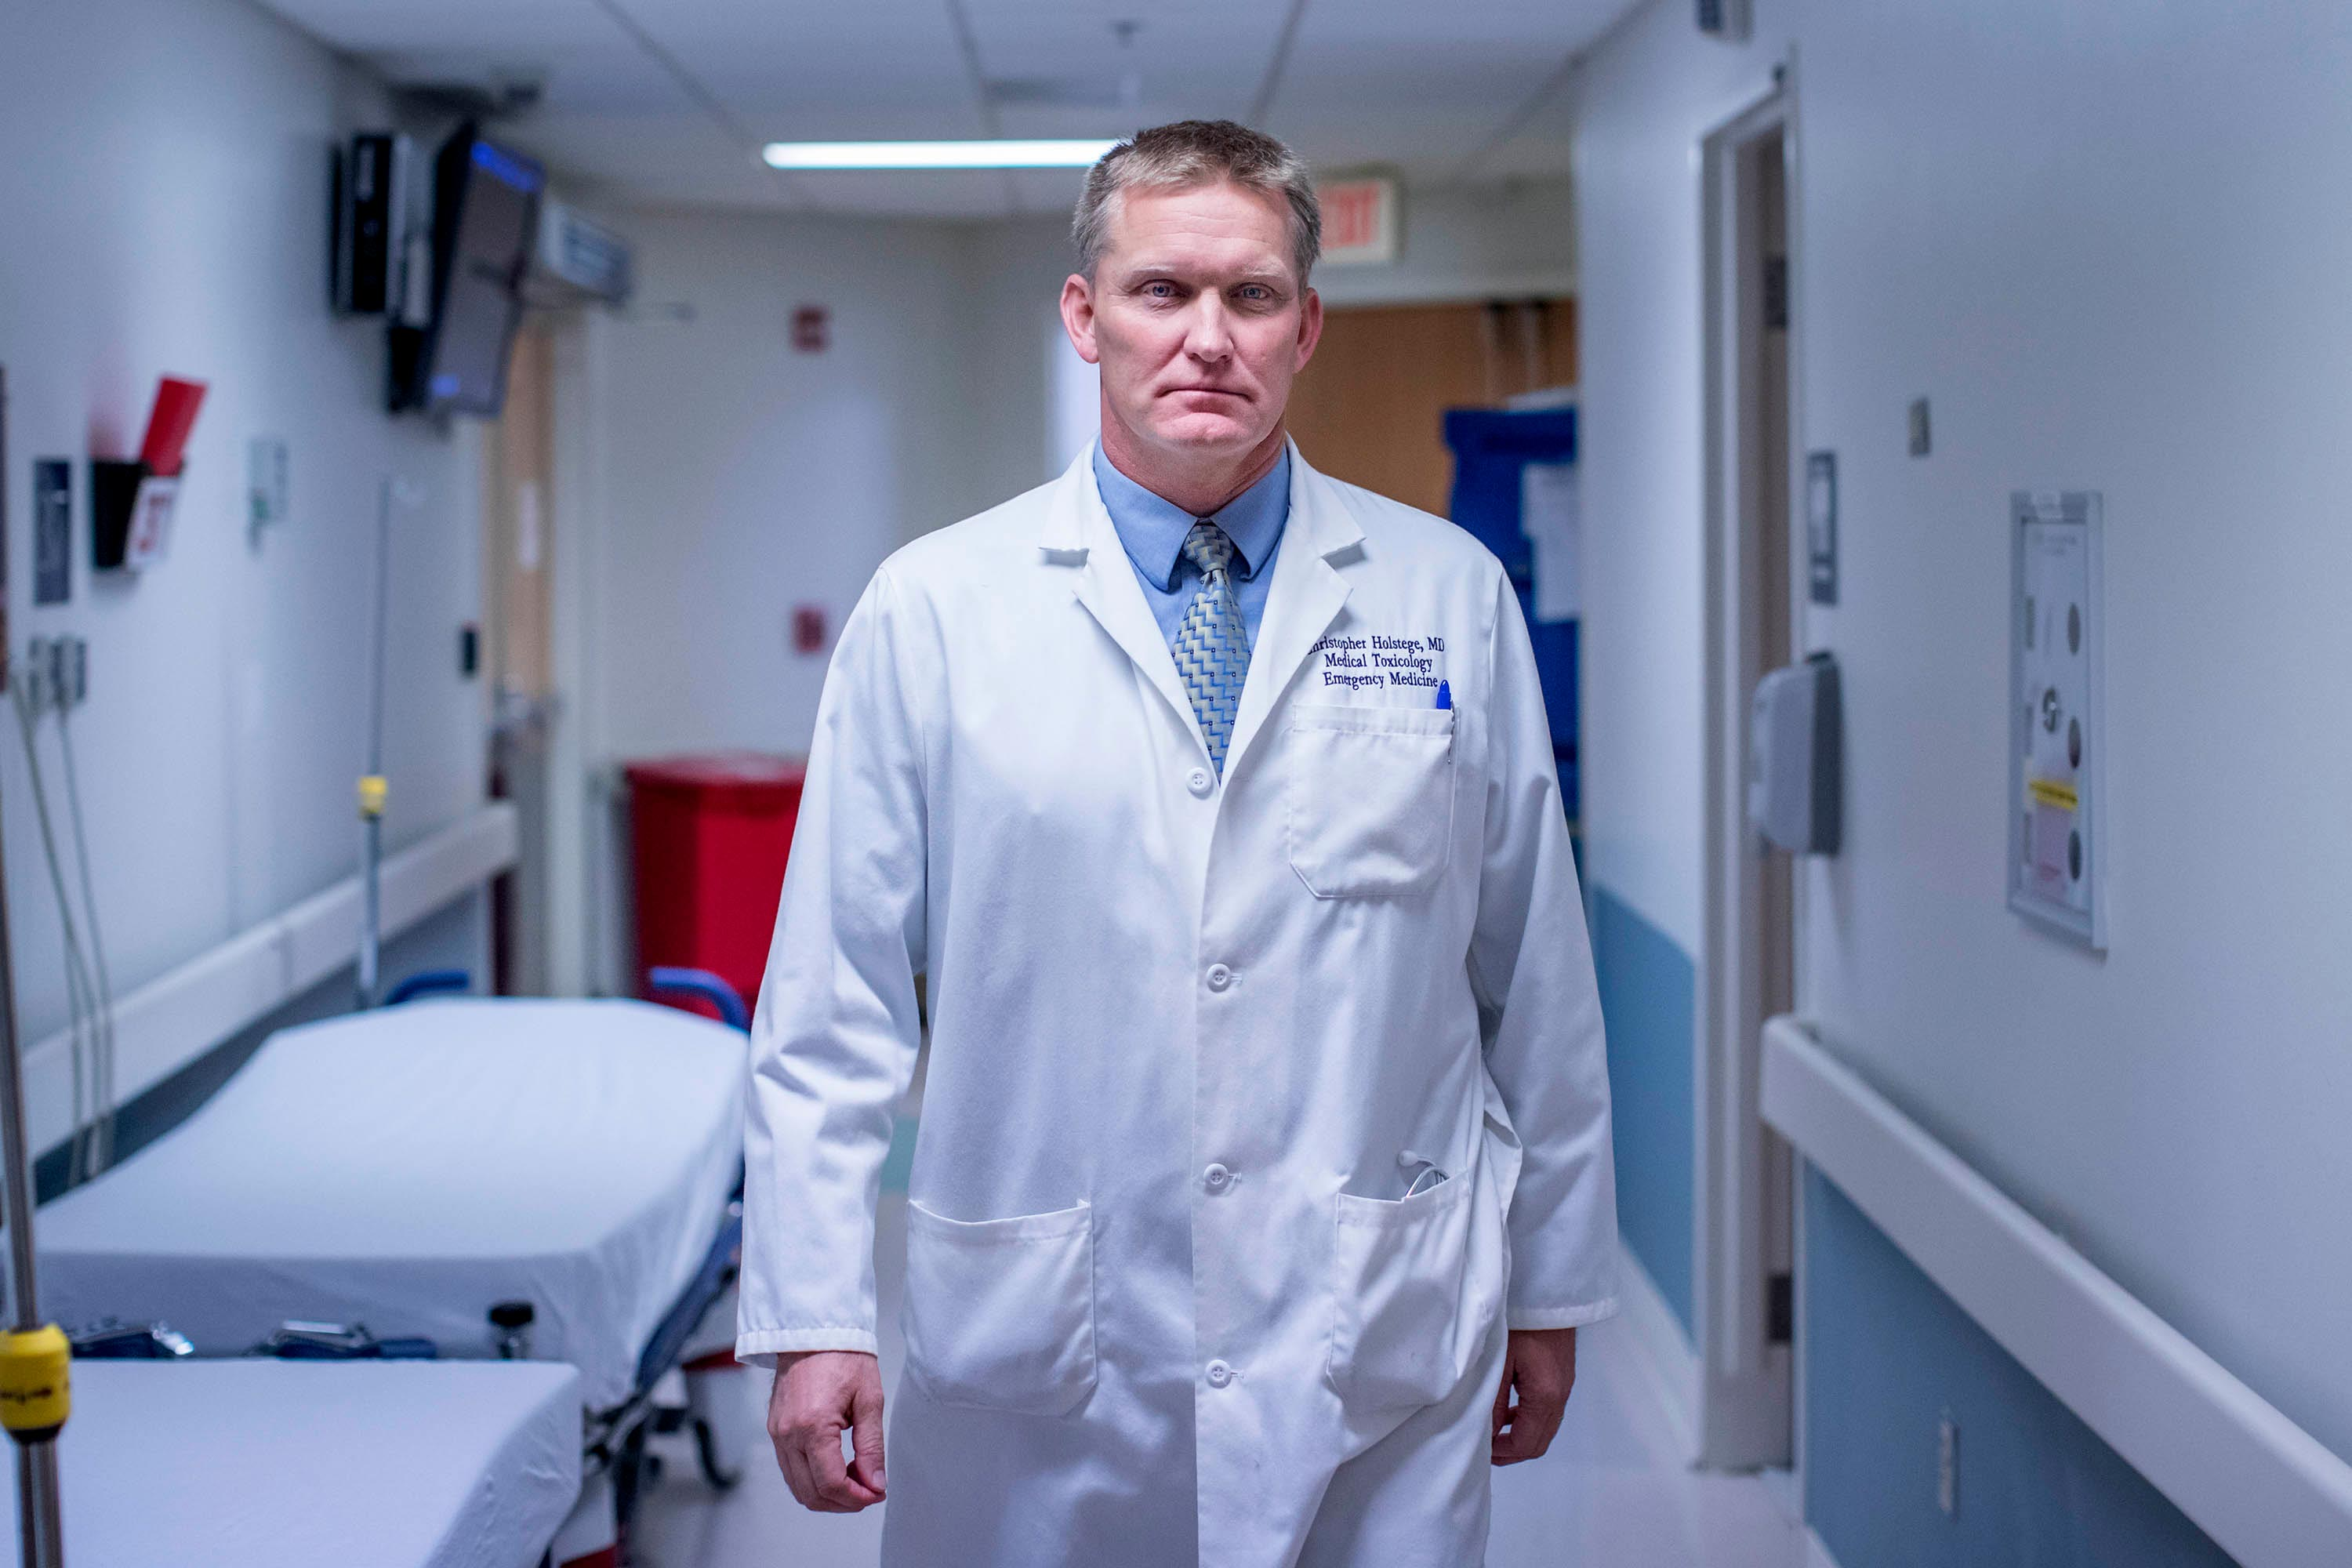 Emergency medicine physician Dr. Chris Holstege, executive director of the Student Health and Wellness Department, urges students to seek well-roundedness.